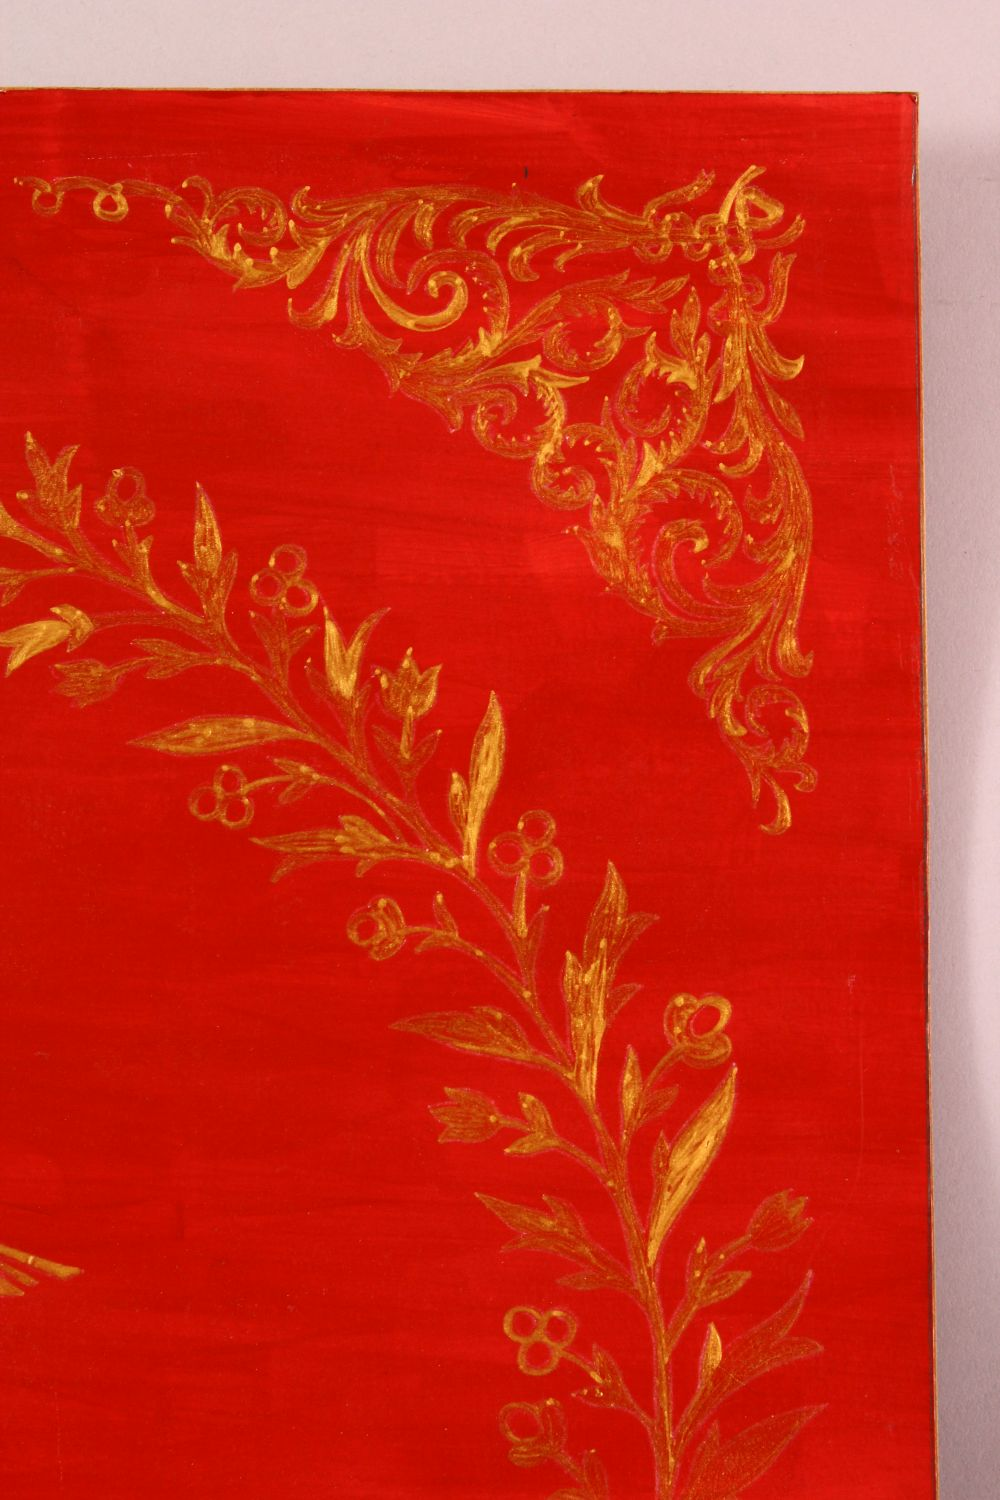 A TURKISH PAINTED CALLIGRAPHY PANEL, red and gilt calligraphy, 50cm x 57cm - Image 3 of 4